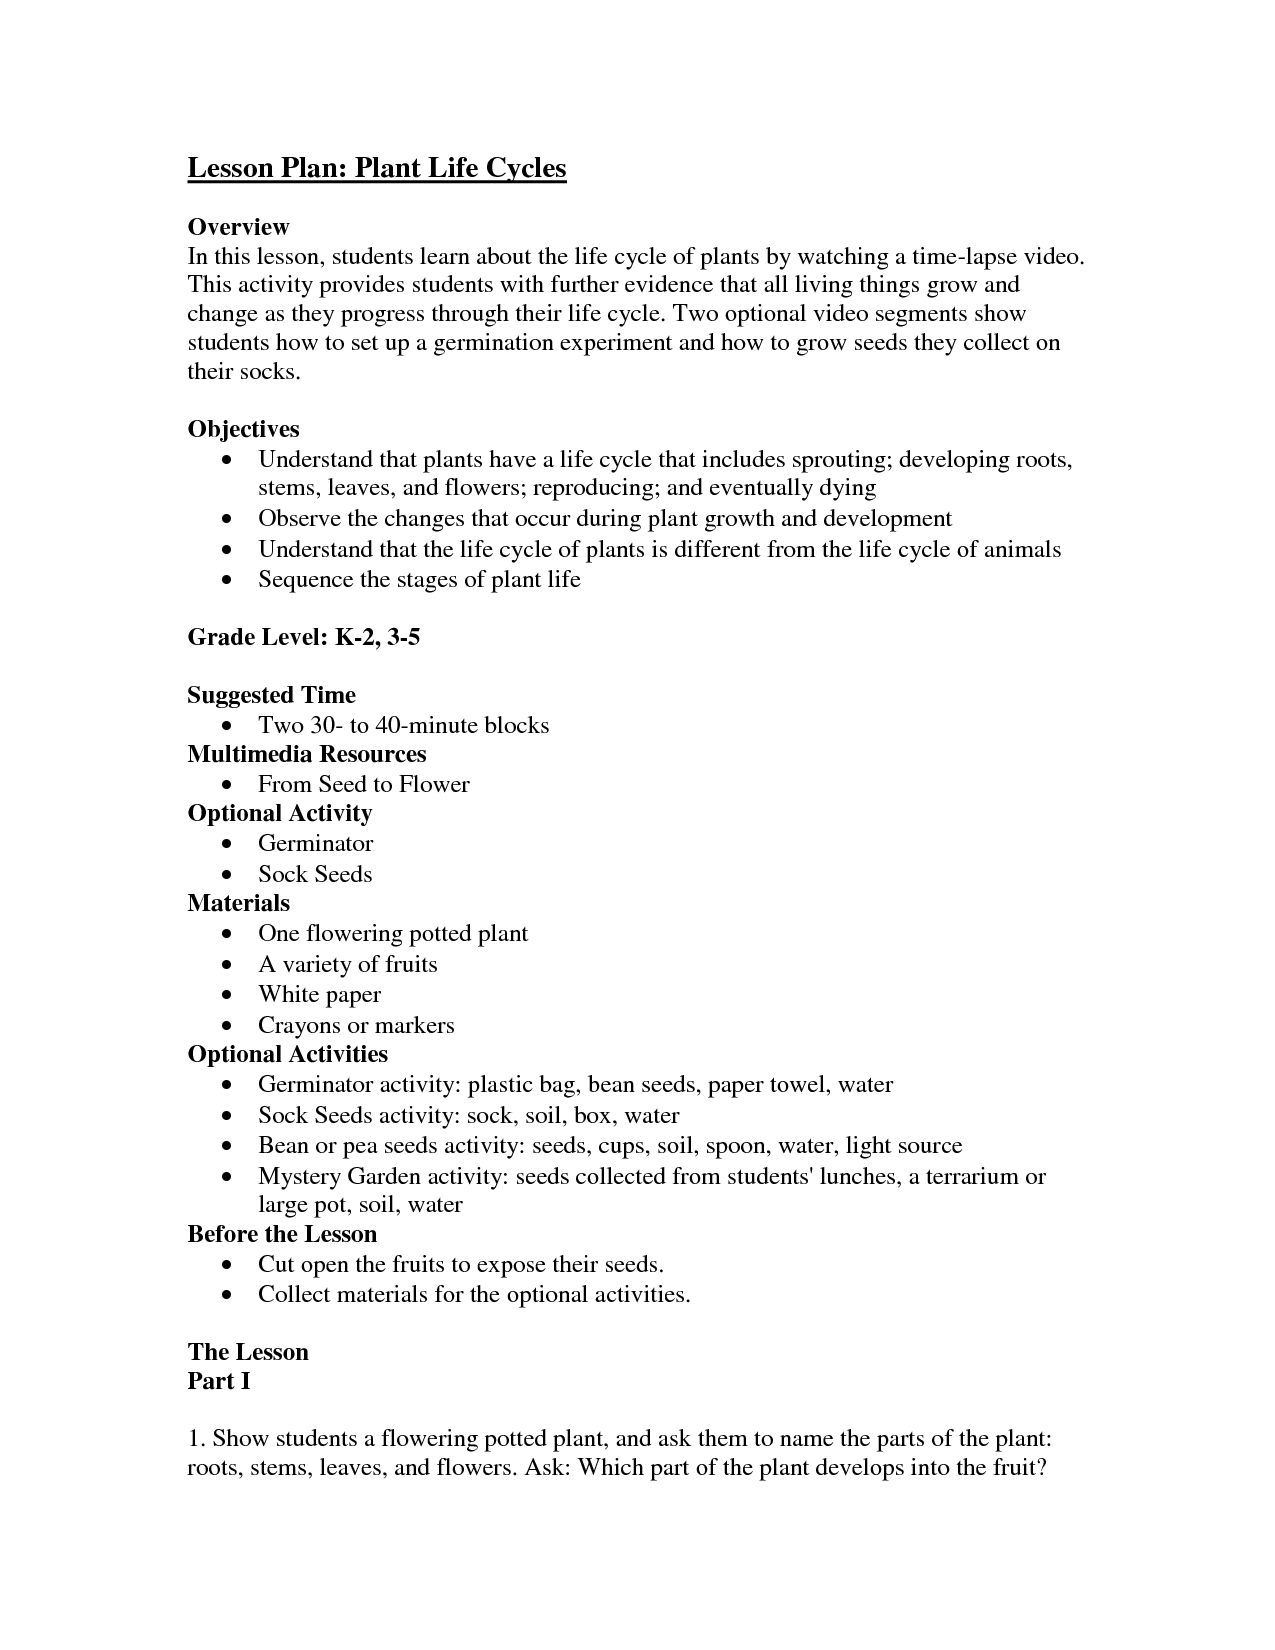 worksheet Seed Dispersal Worksheet Ks2 flower lesson plans plan plant life cycles overview in this students learn